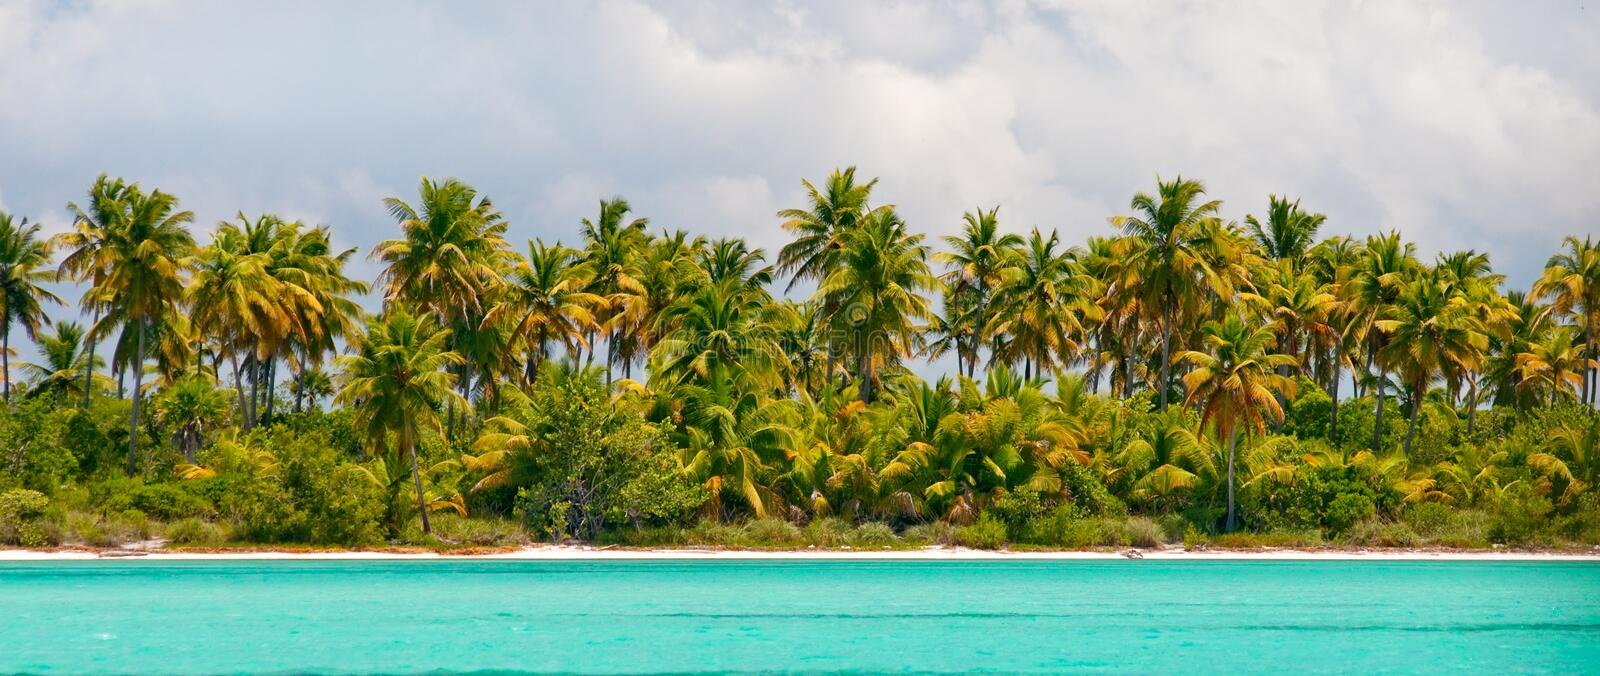 Tropical island - sea, sky and palm trees royalty free stock photos